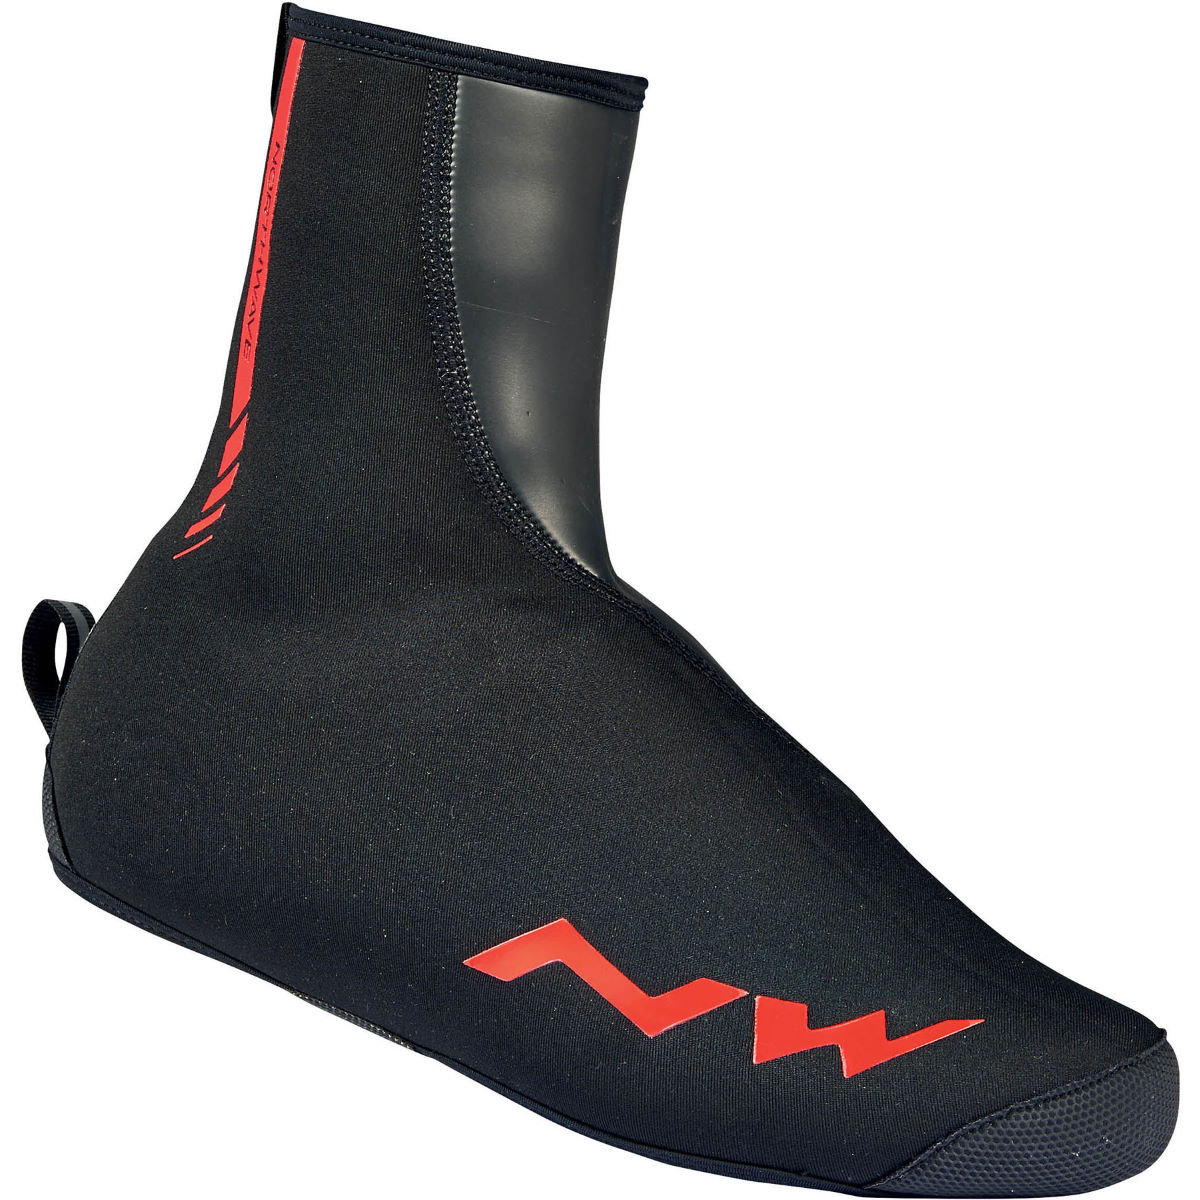 Northwave Northwave Sonic 2 Shoecover   Overshoes